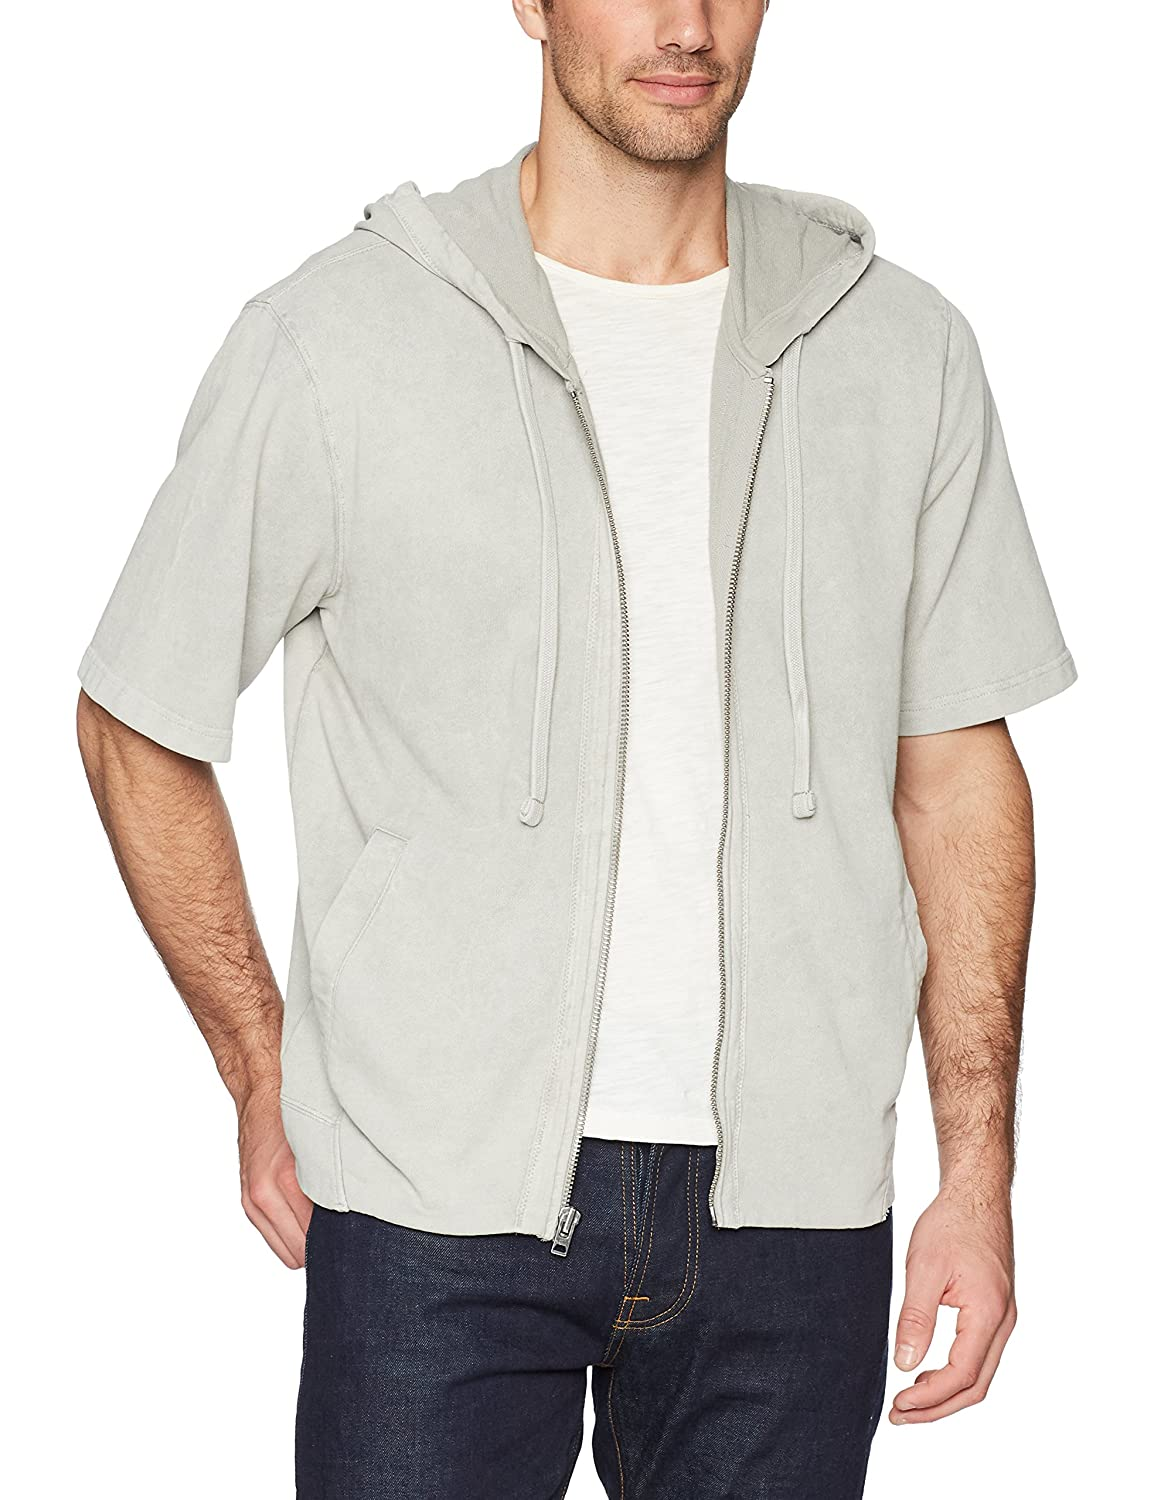 William Rast Mens Rowan Short Sleeve Zip Hoodie